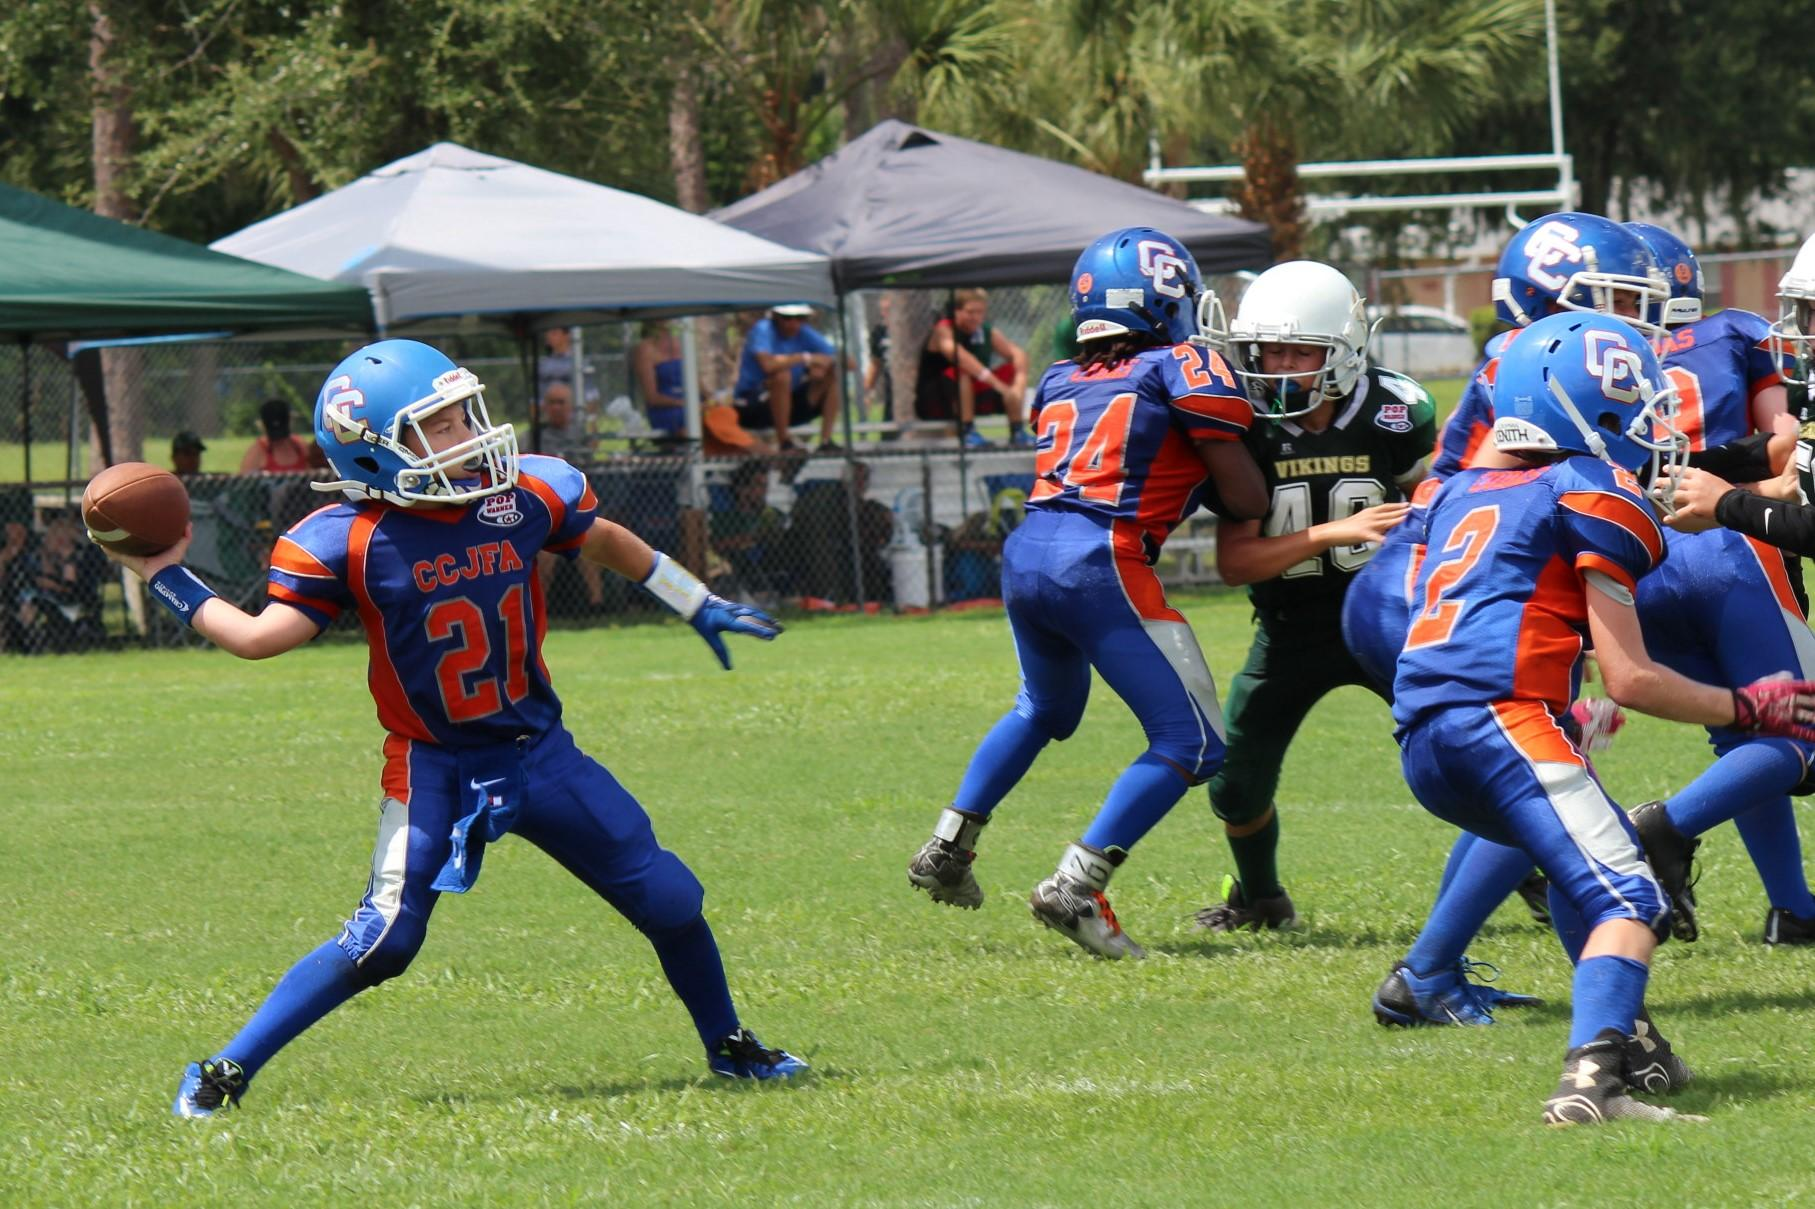 Naples bears jr midget photos 665